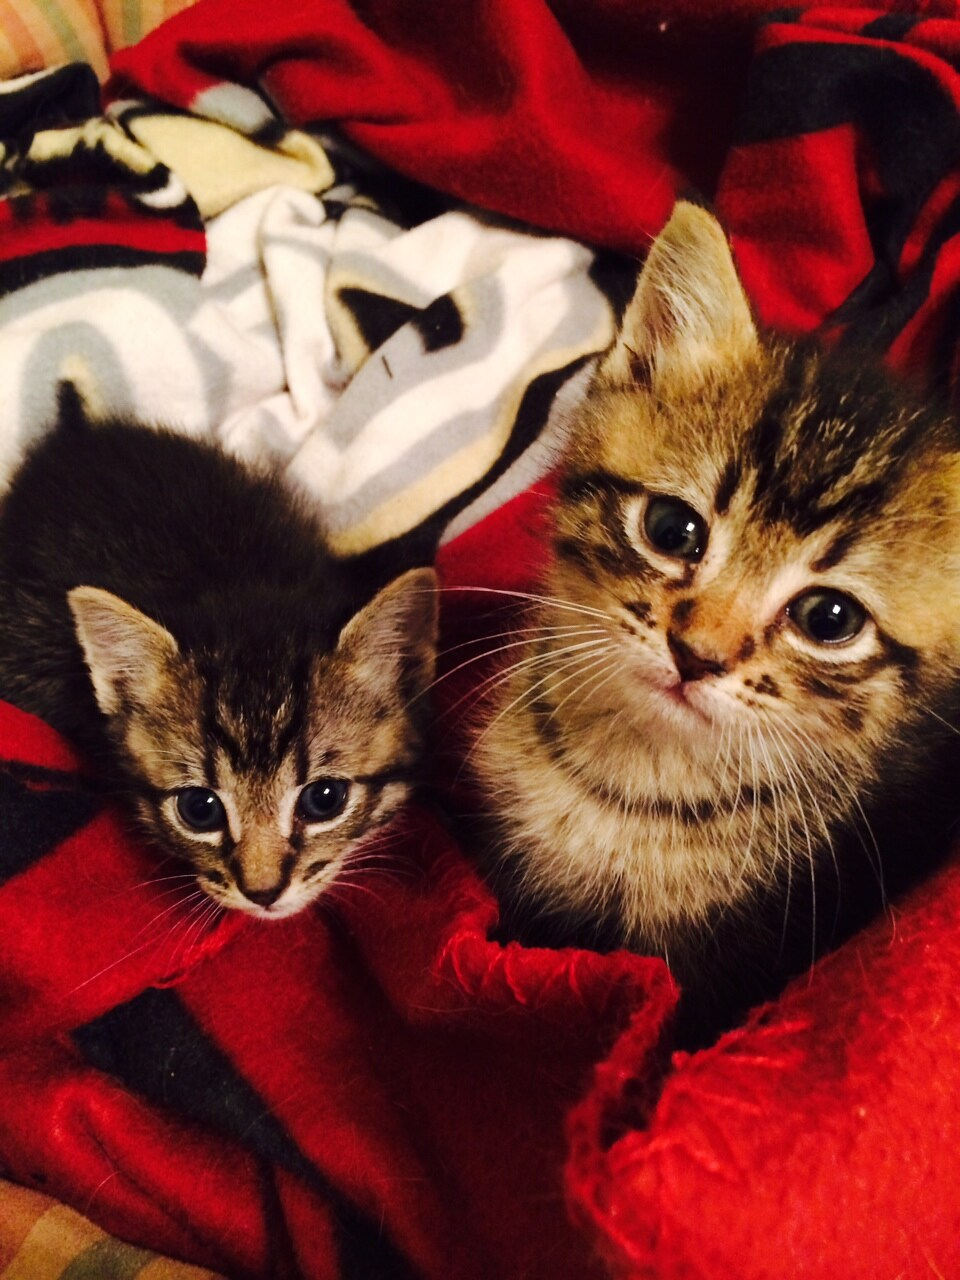 Basket of  Kittens donated to Marley's Mutts